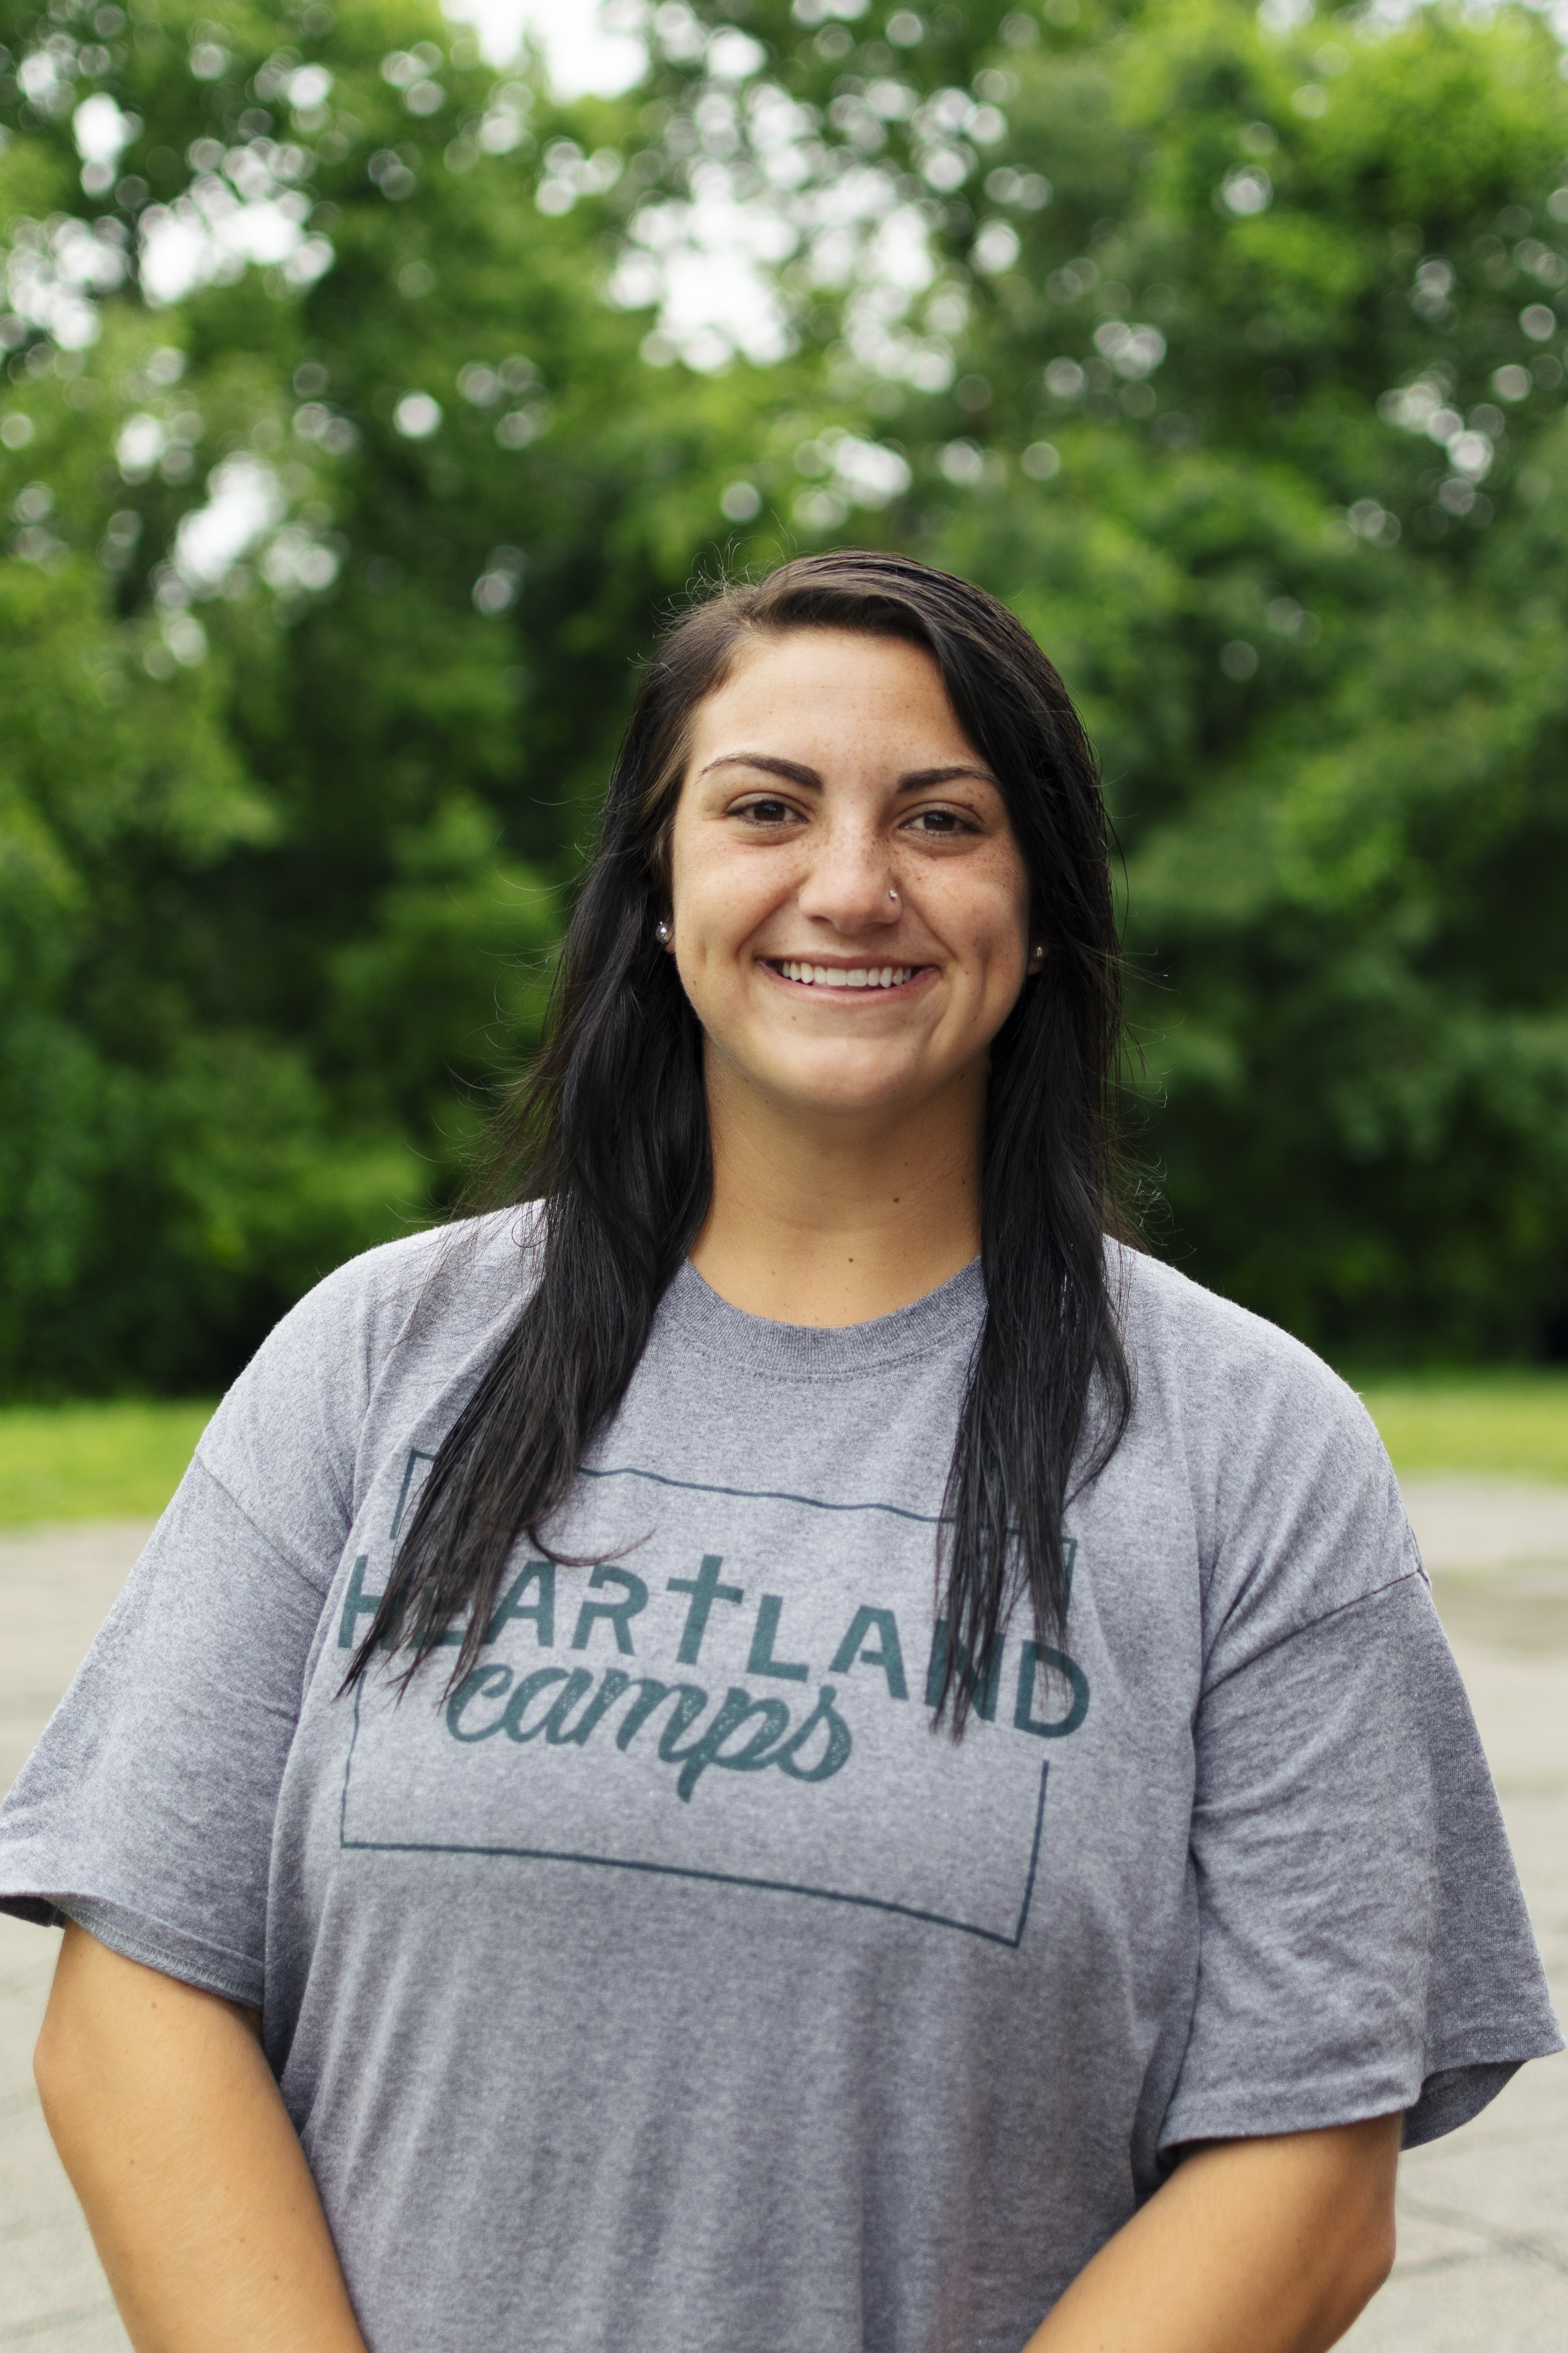 Janae Leonard is a student at Mississippi State University. She is majoring in Ministry with an emphasis in Missions. Her favorite scripture is Proverbs 3:5-6.